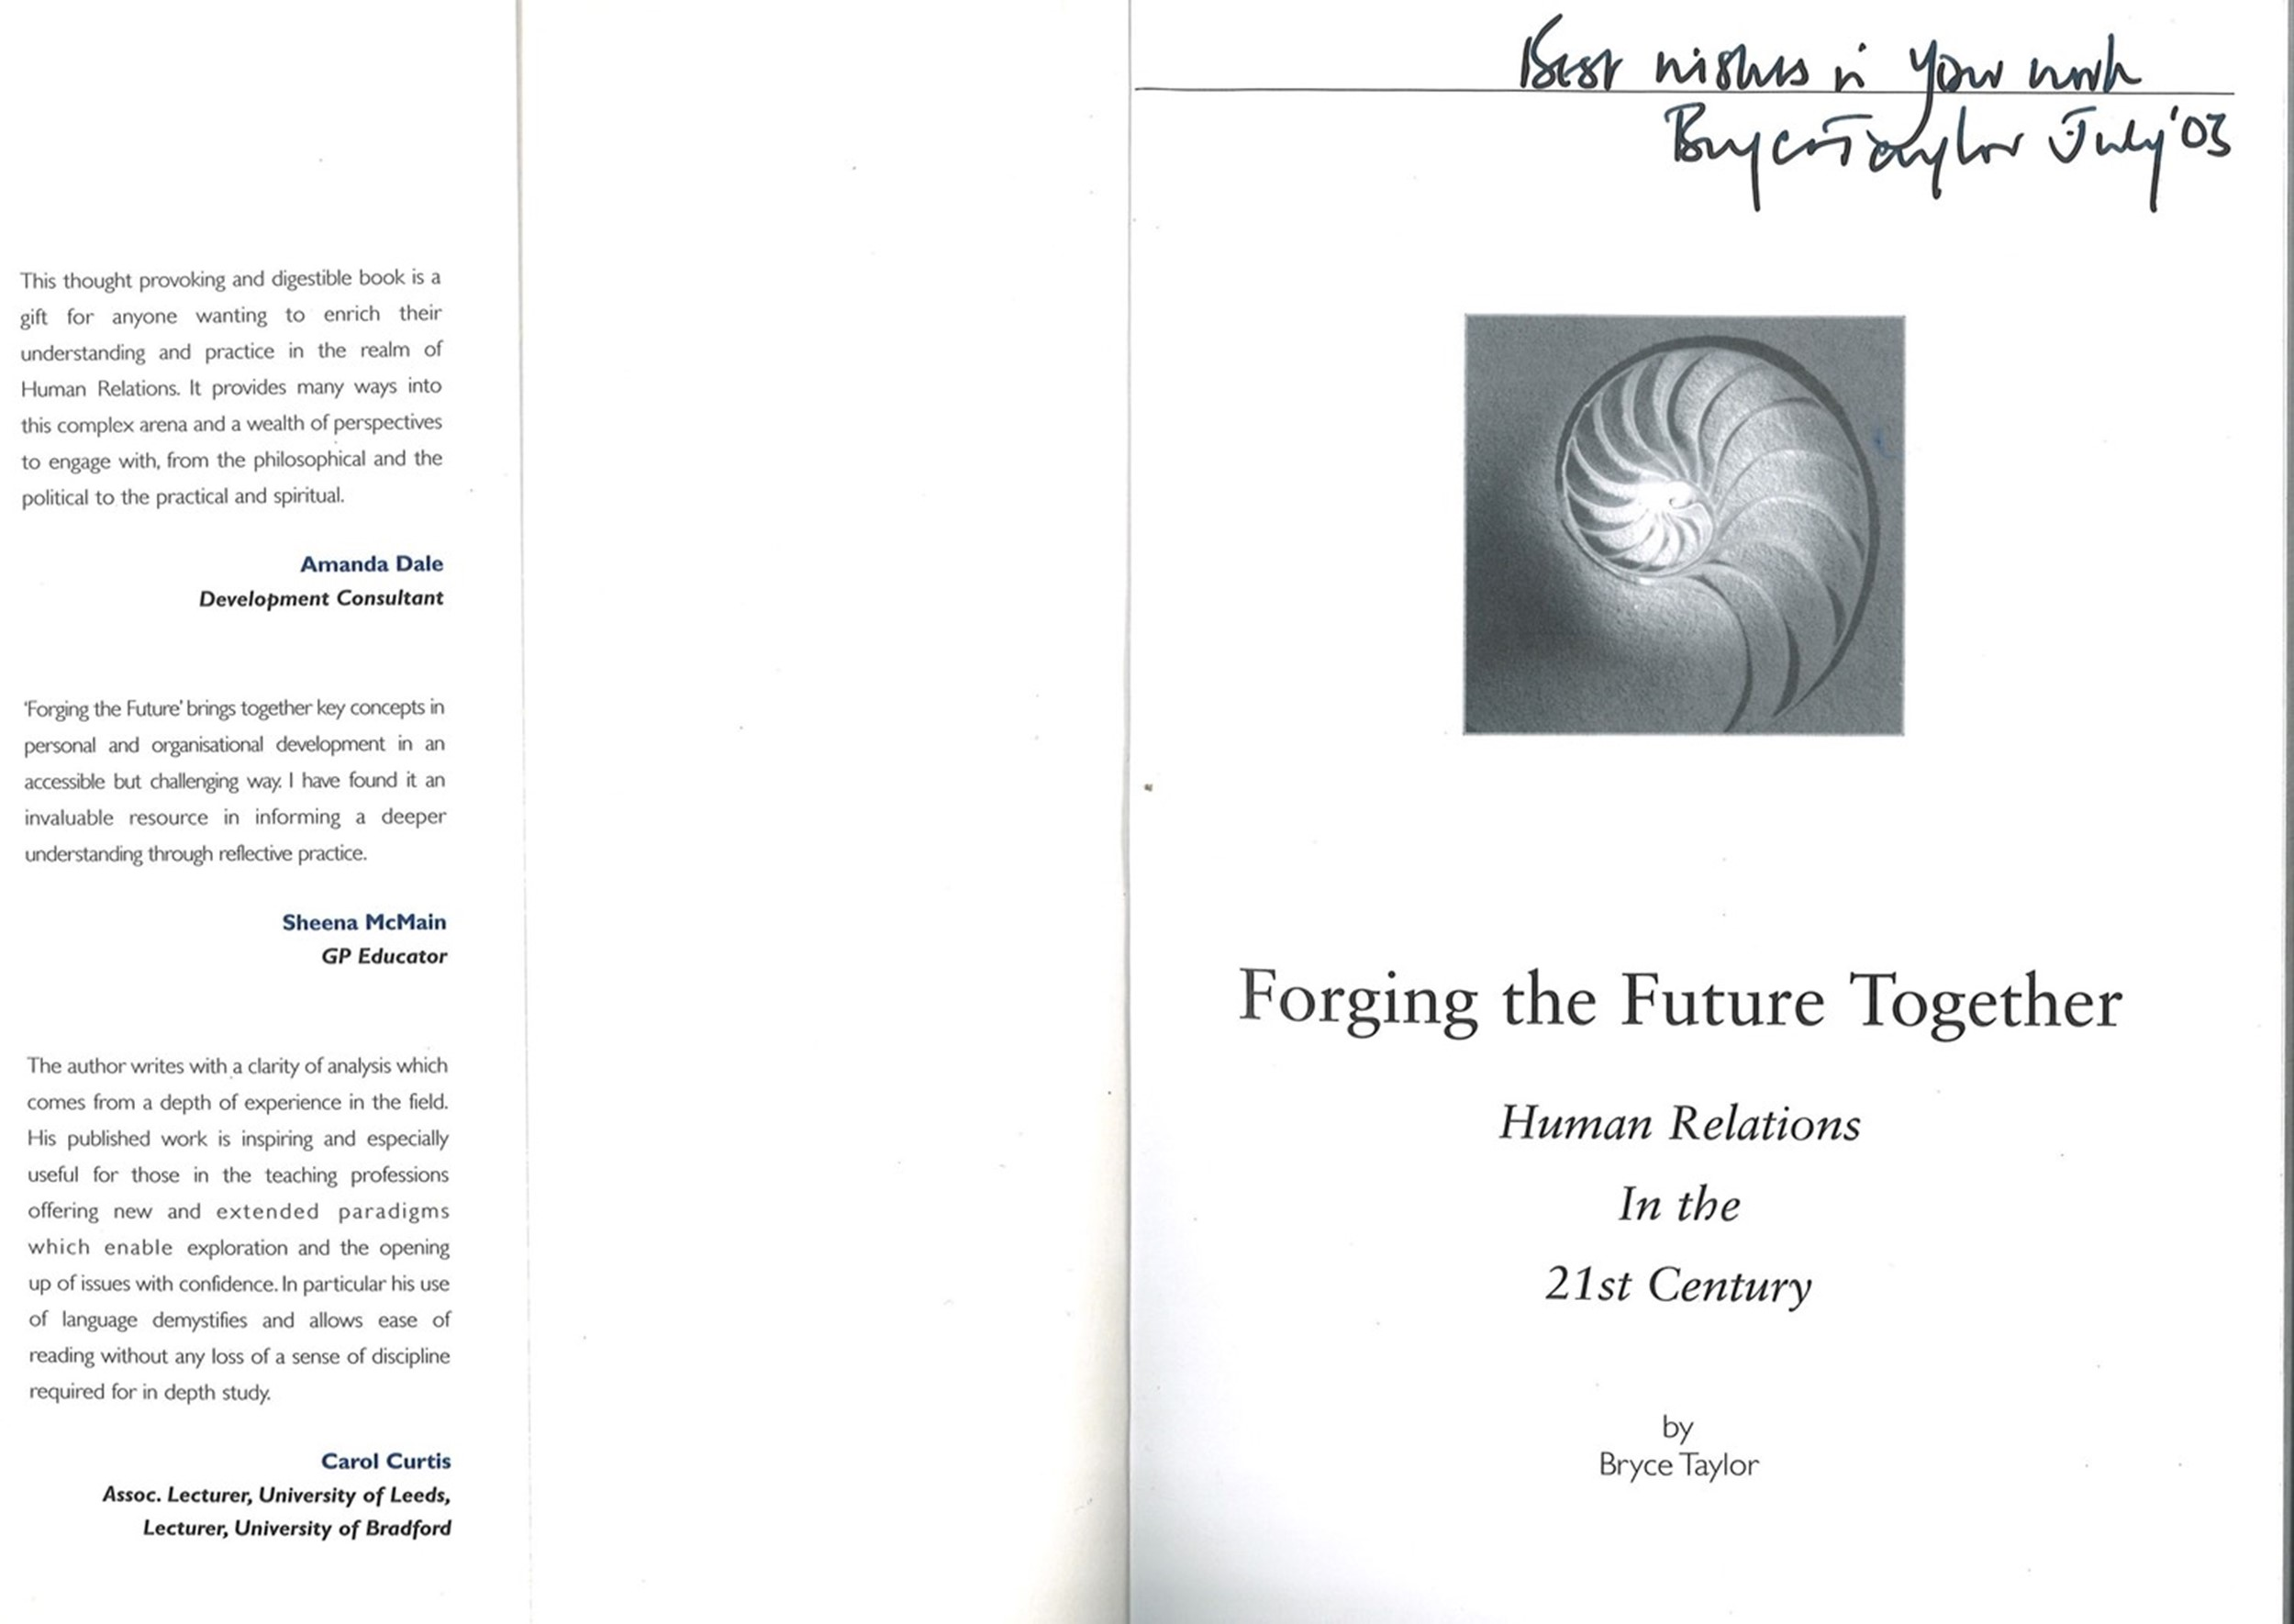 5 signed books. P A Davies signed Letterbox titled book. Sean Weafer signed business coaching - Image 3 of 5